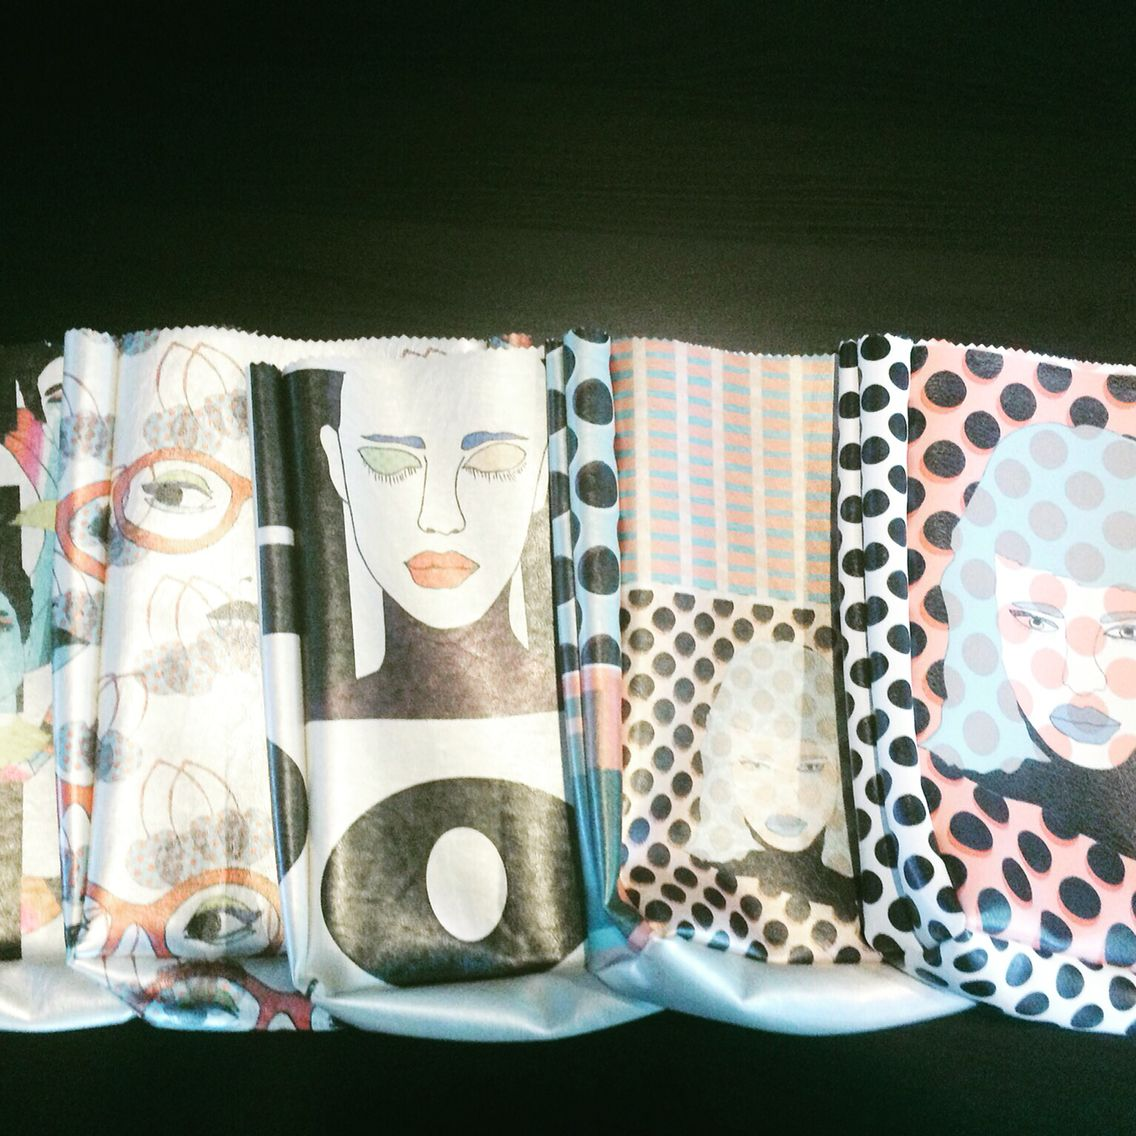 Lunch bag style handbags with my print.